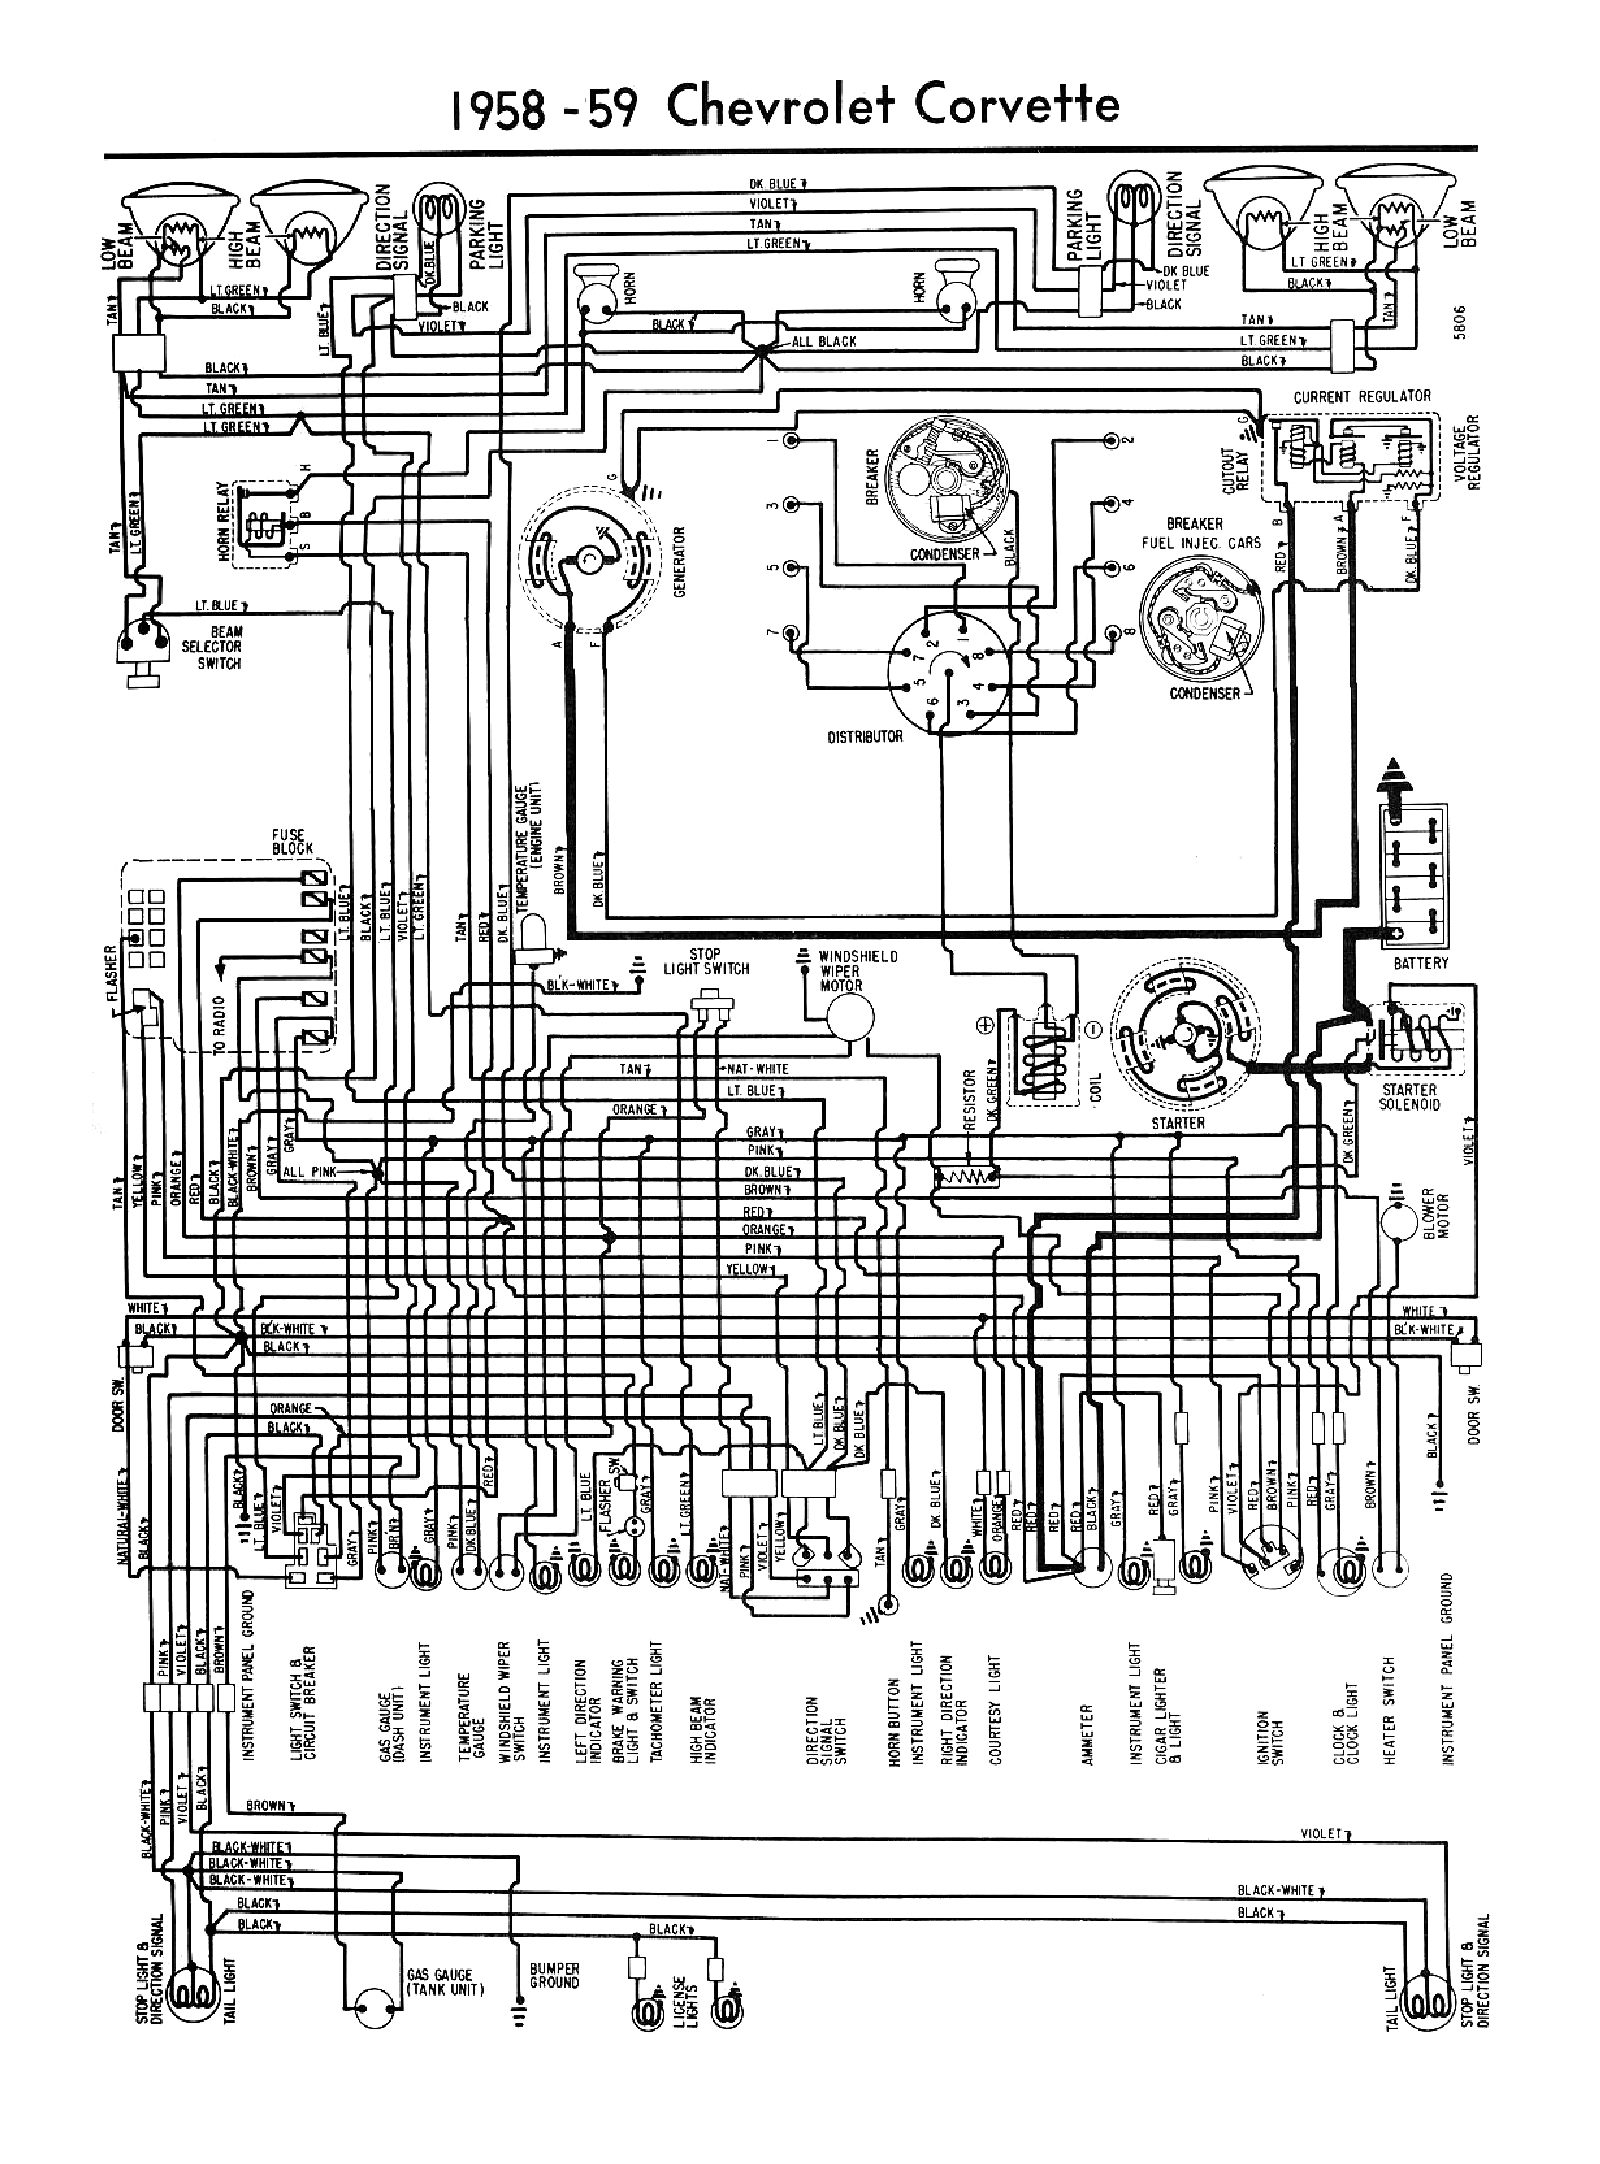 95 Chevy Pickup Wiring Diagram Top Engine Fuse 1995 1959 Data Schema Rh Site De Joueurs Com